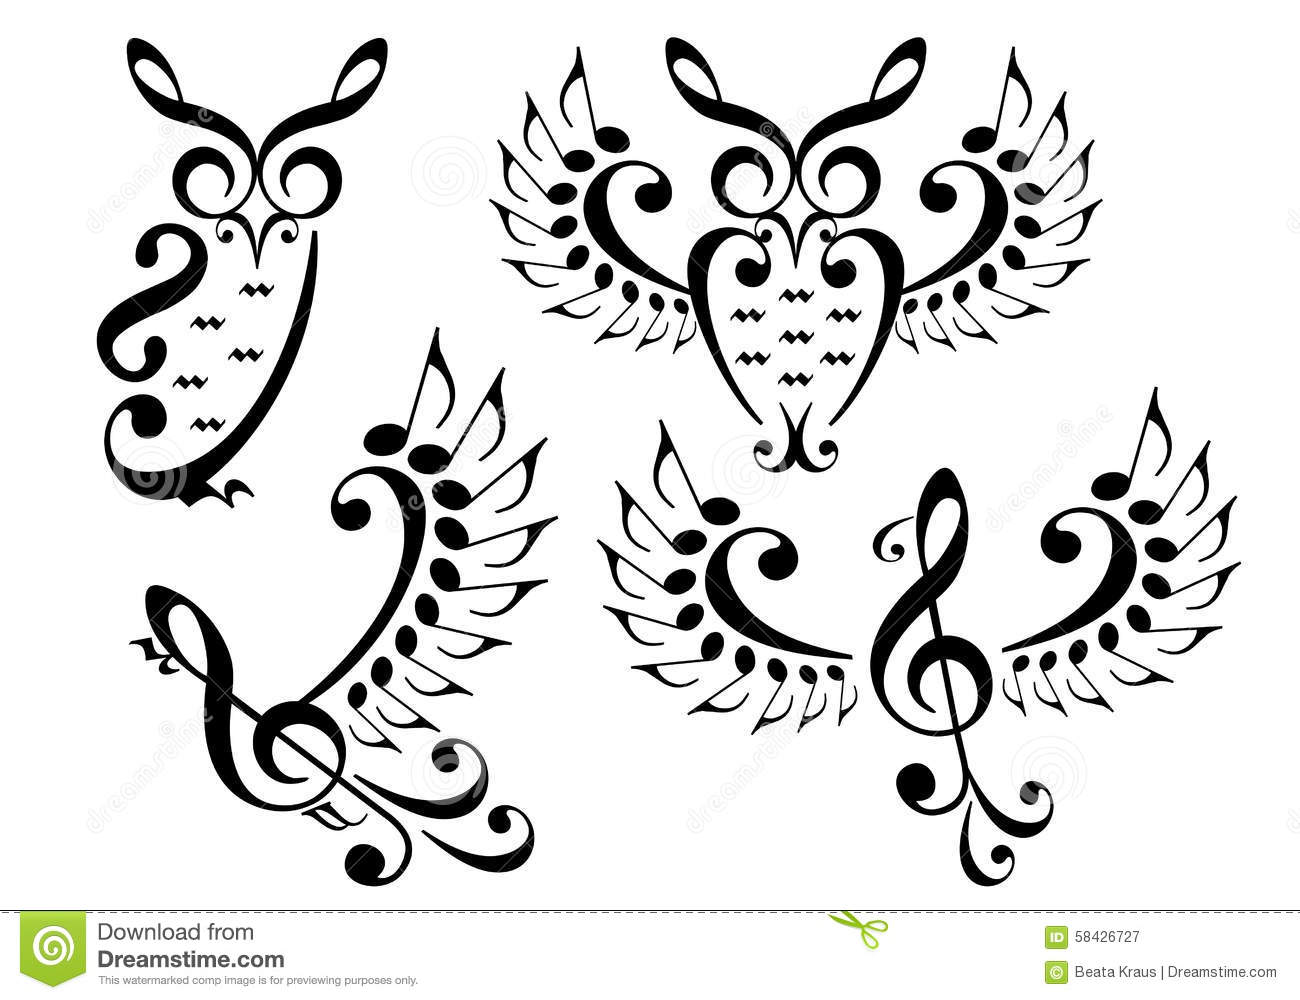 Heraldry Elements With Wings And Ribbons For Design Vector 2101098 also Laurel Wreath further Long sleeve t Shirt clipart besides Yamaha Bass Clari as well Laurel Wreath Symbol Of Victory And Achievement Vector 15839608. on award outline